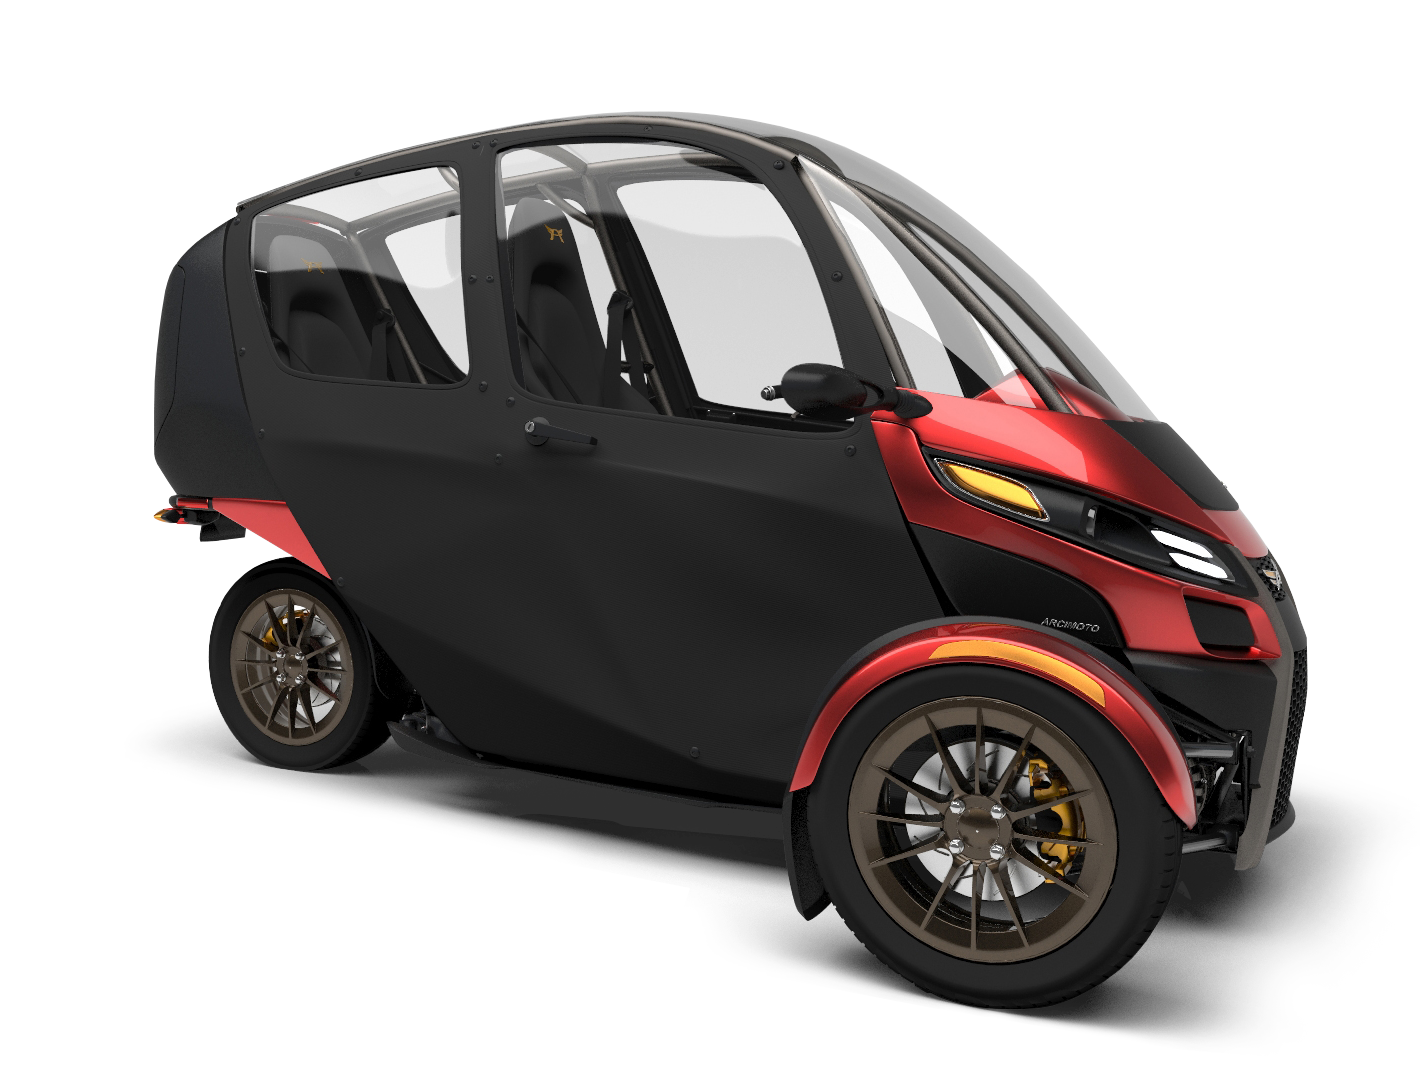 The exciting brand new street legal cruser sport elec car amp golf cart - Arcimoto The Everyday Electric Electric Vehicleelectric Carscity